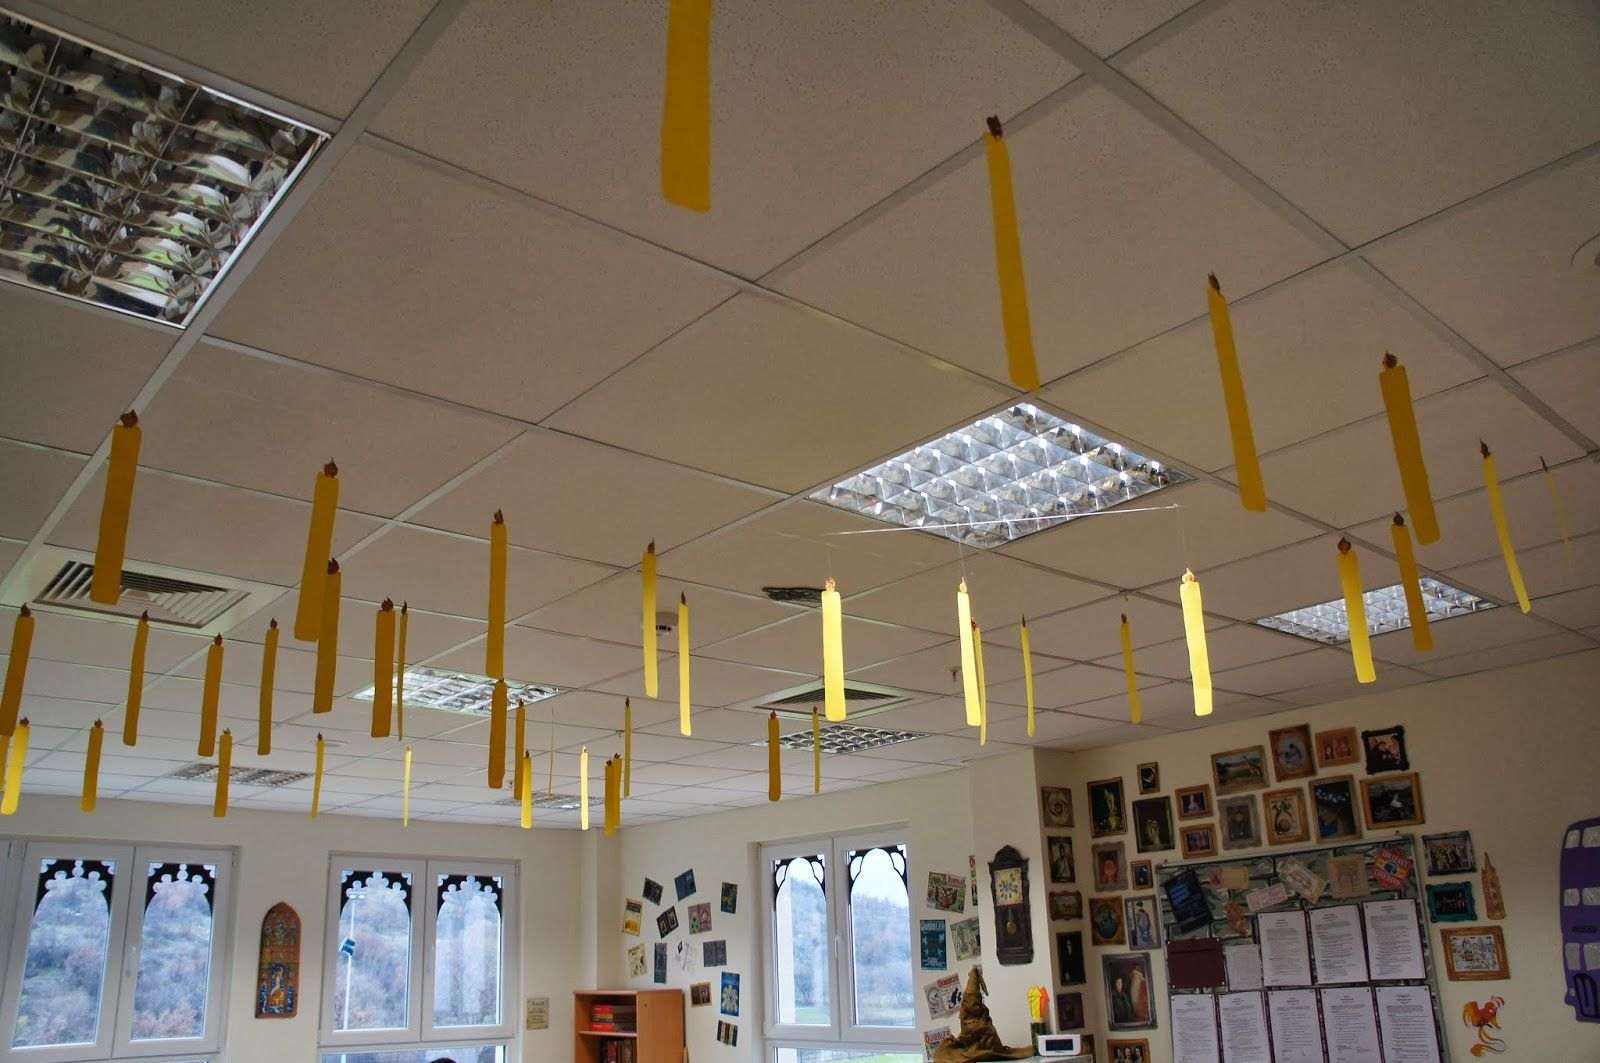 The Charming Classroom Floating Candles In The Great Hall At Hogwarts Harry Potter Themed